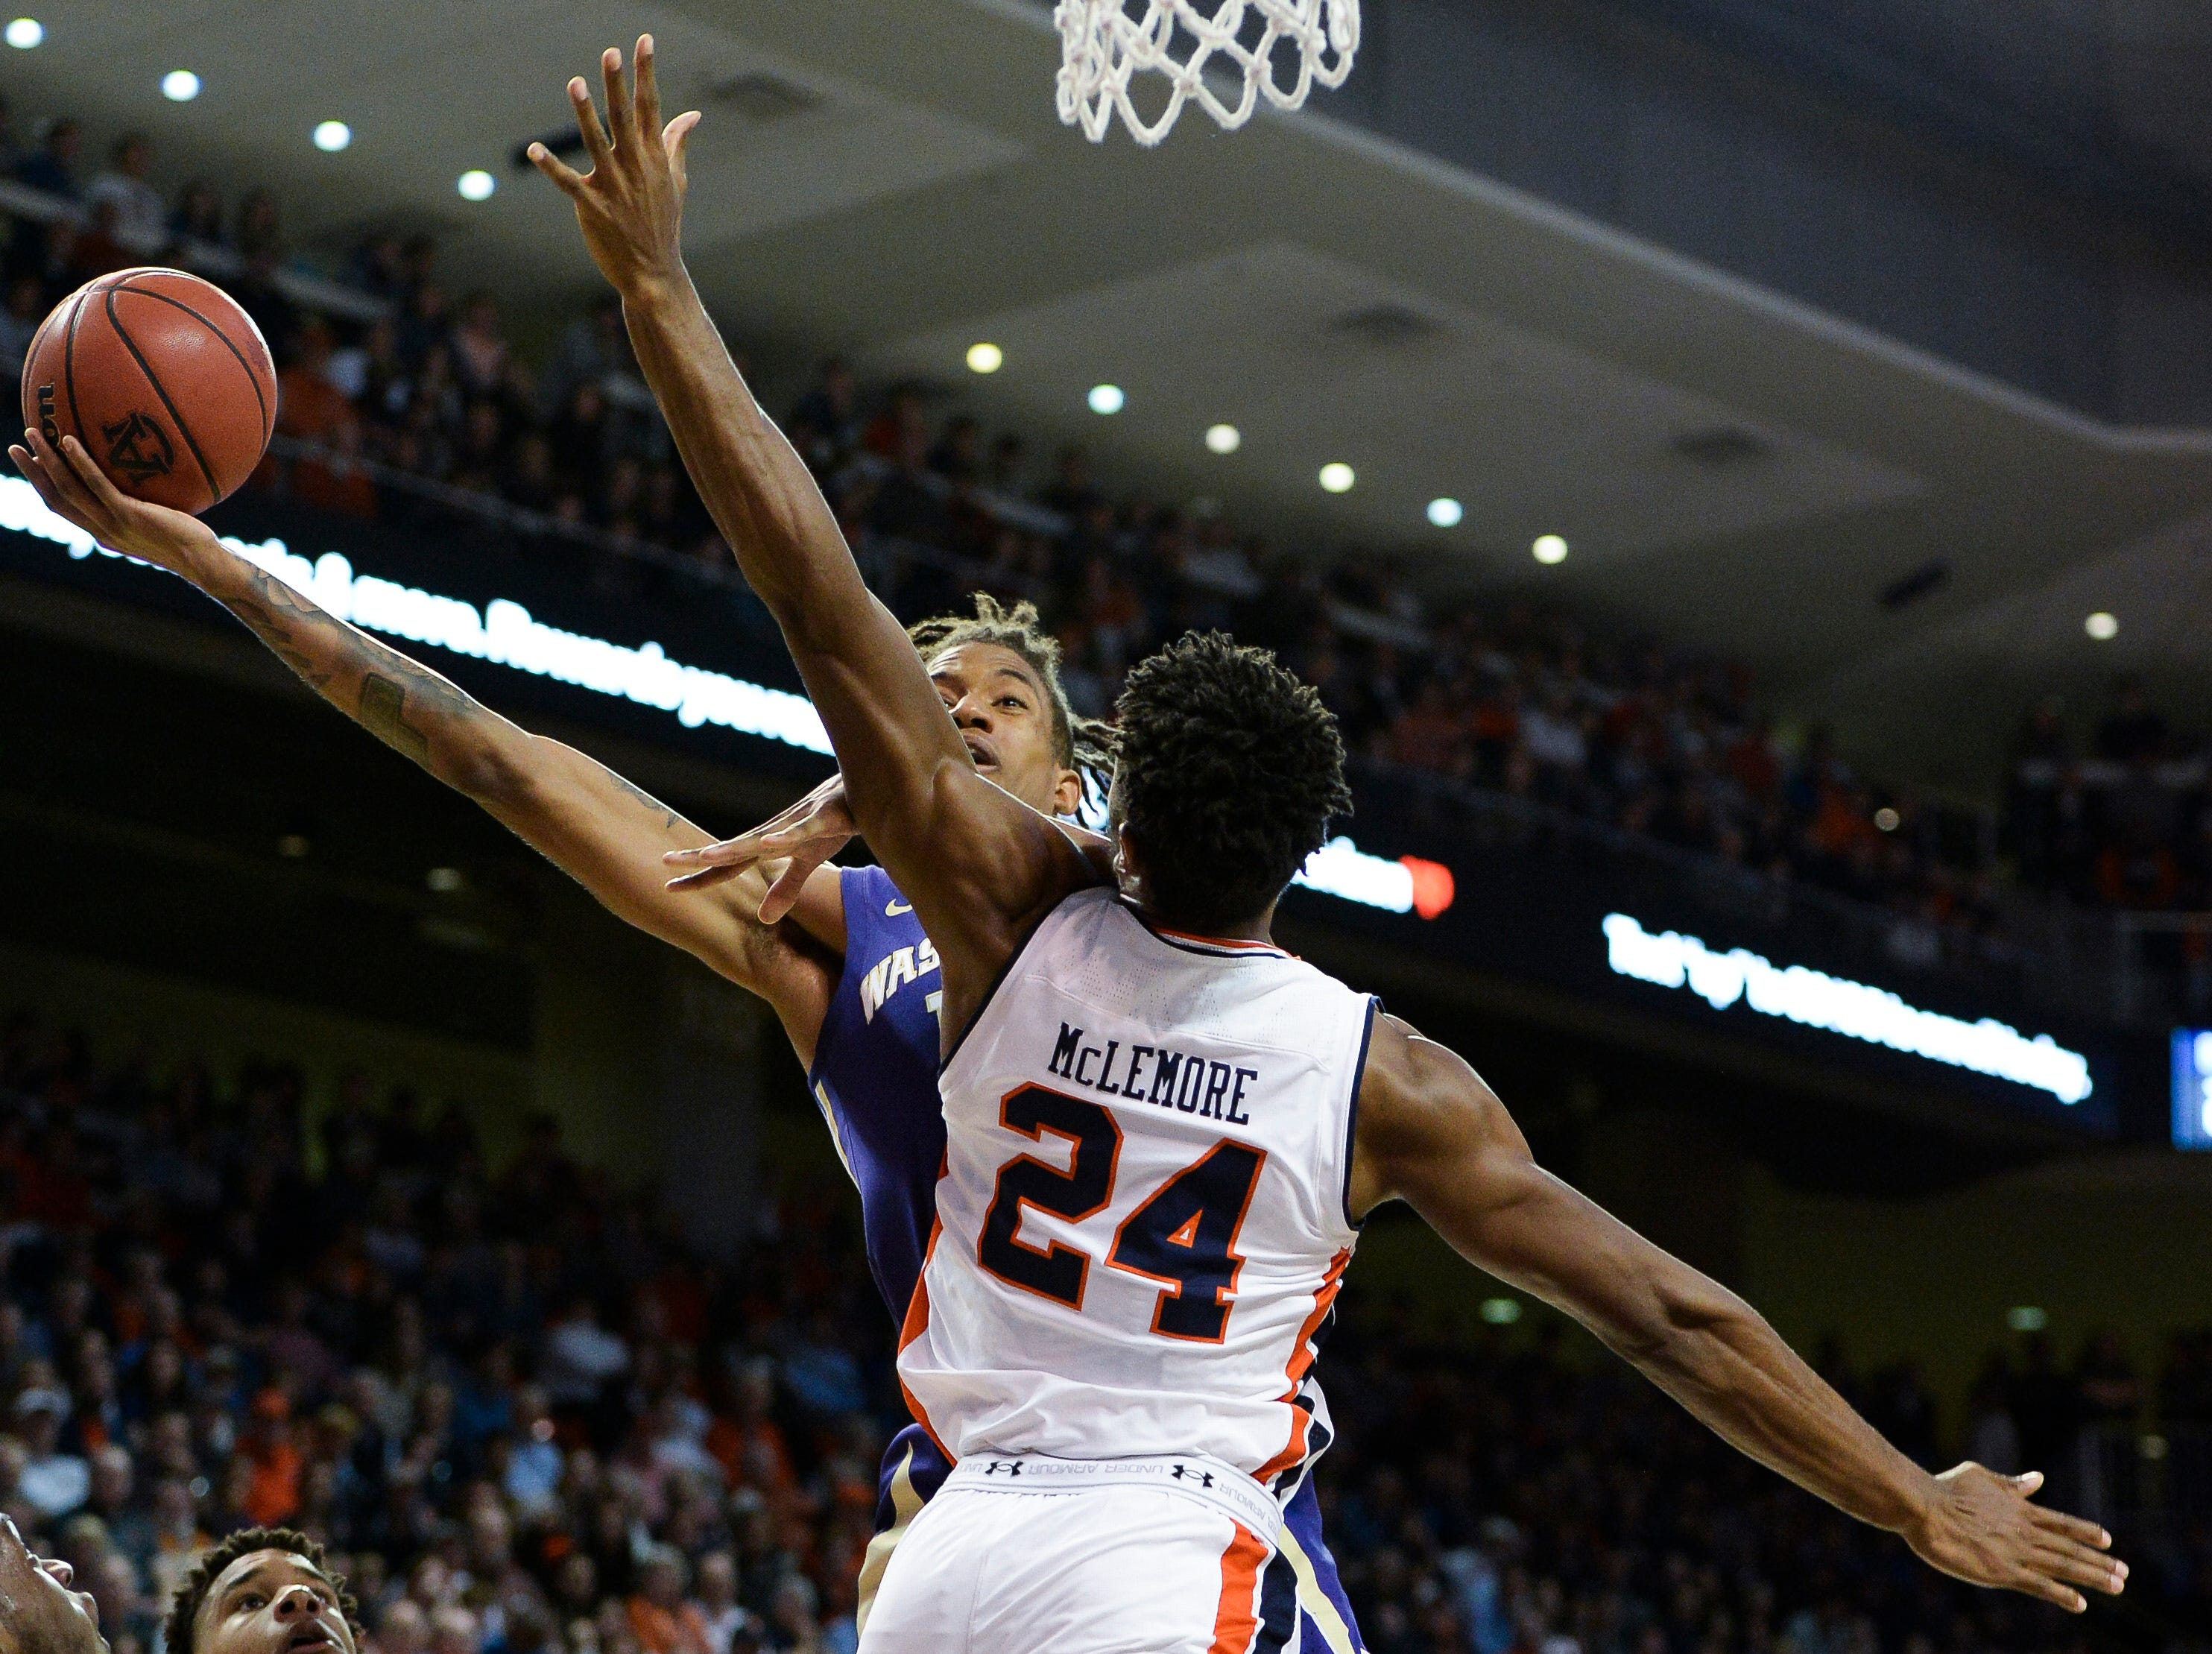 Nov 9, 2018; Auburn, AL, USA; Washington Huskies forward Hameir Wright (13) shoots over Auburn Tigers forward Anfernee McLemore (24) at Auburn Arena. Mandatory Credit: Julie Bennett-USA TODAY Sports